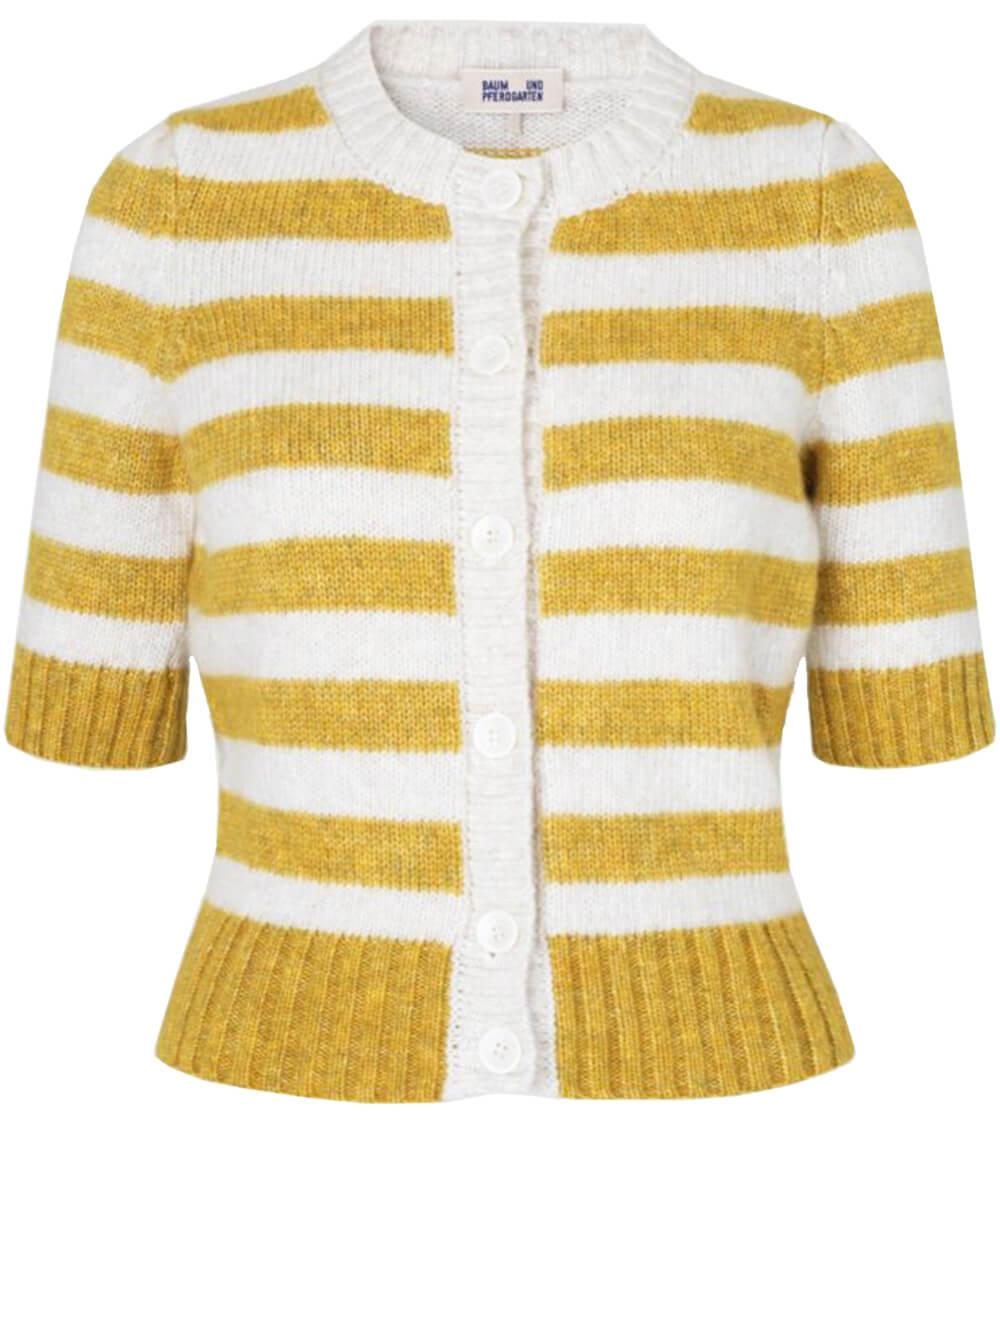 Cachay Striped Cardigan